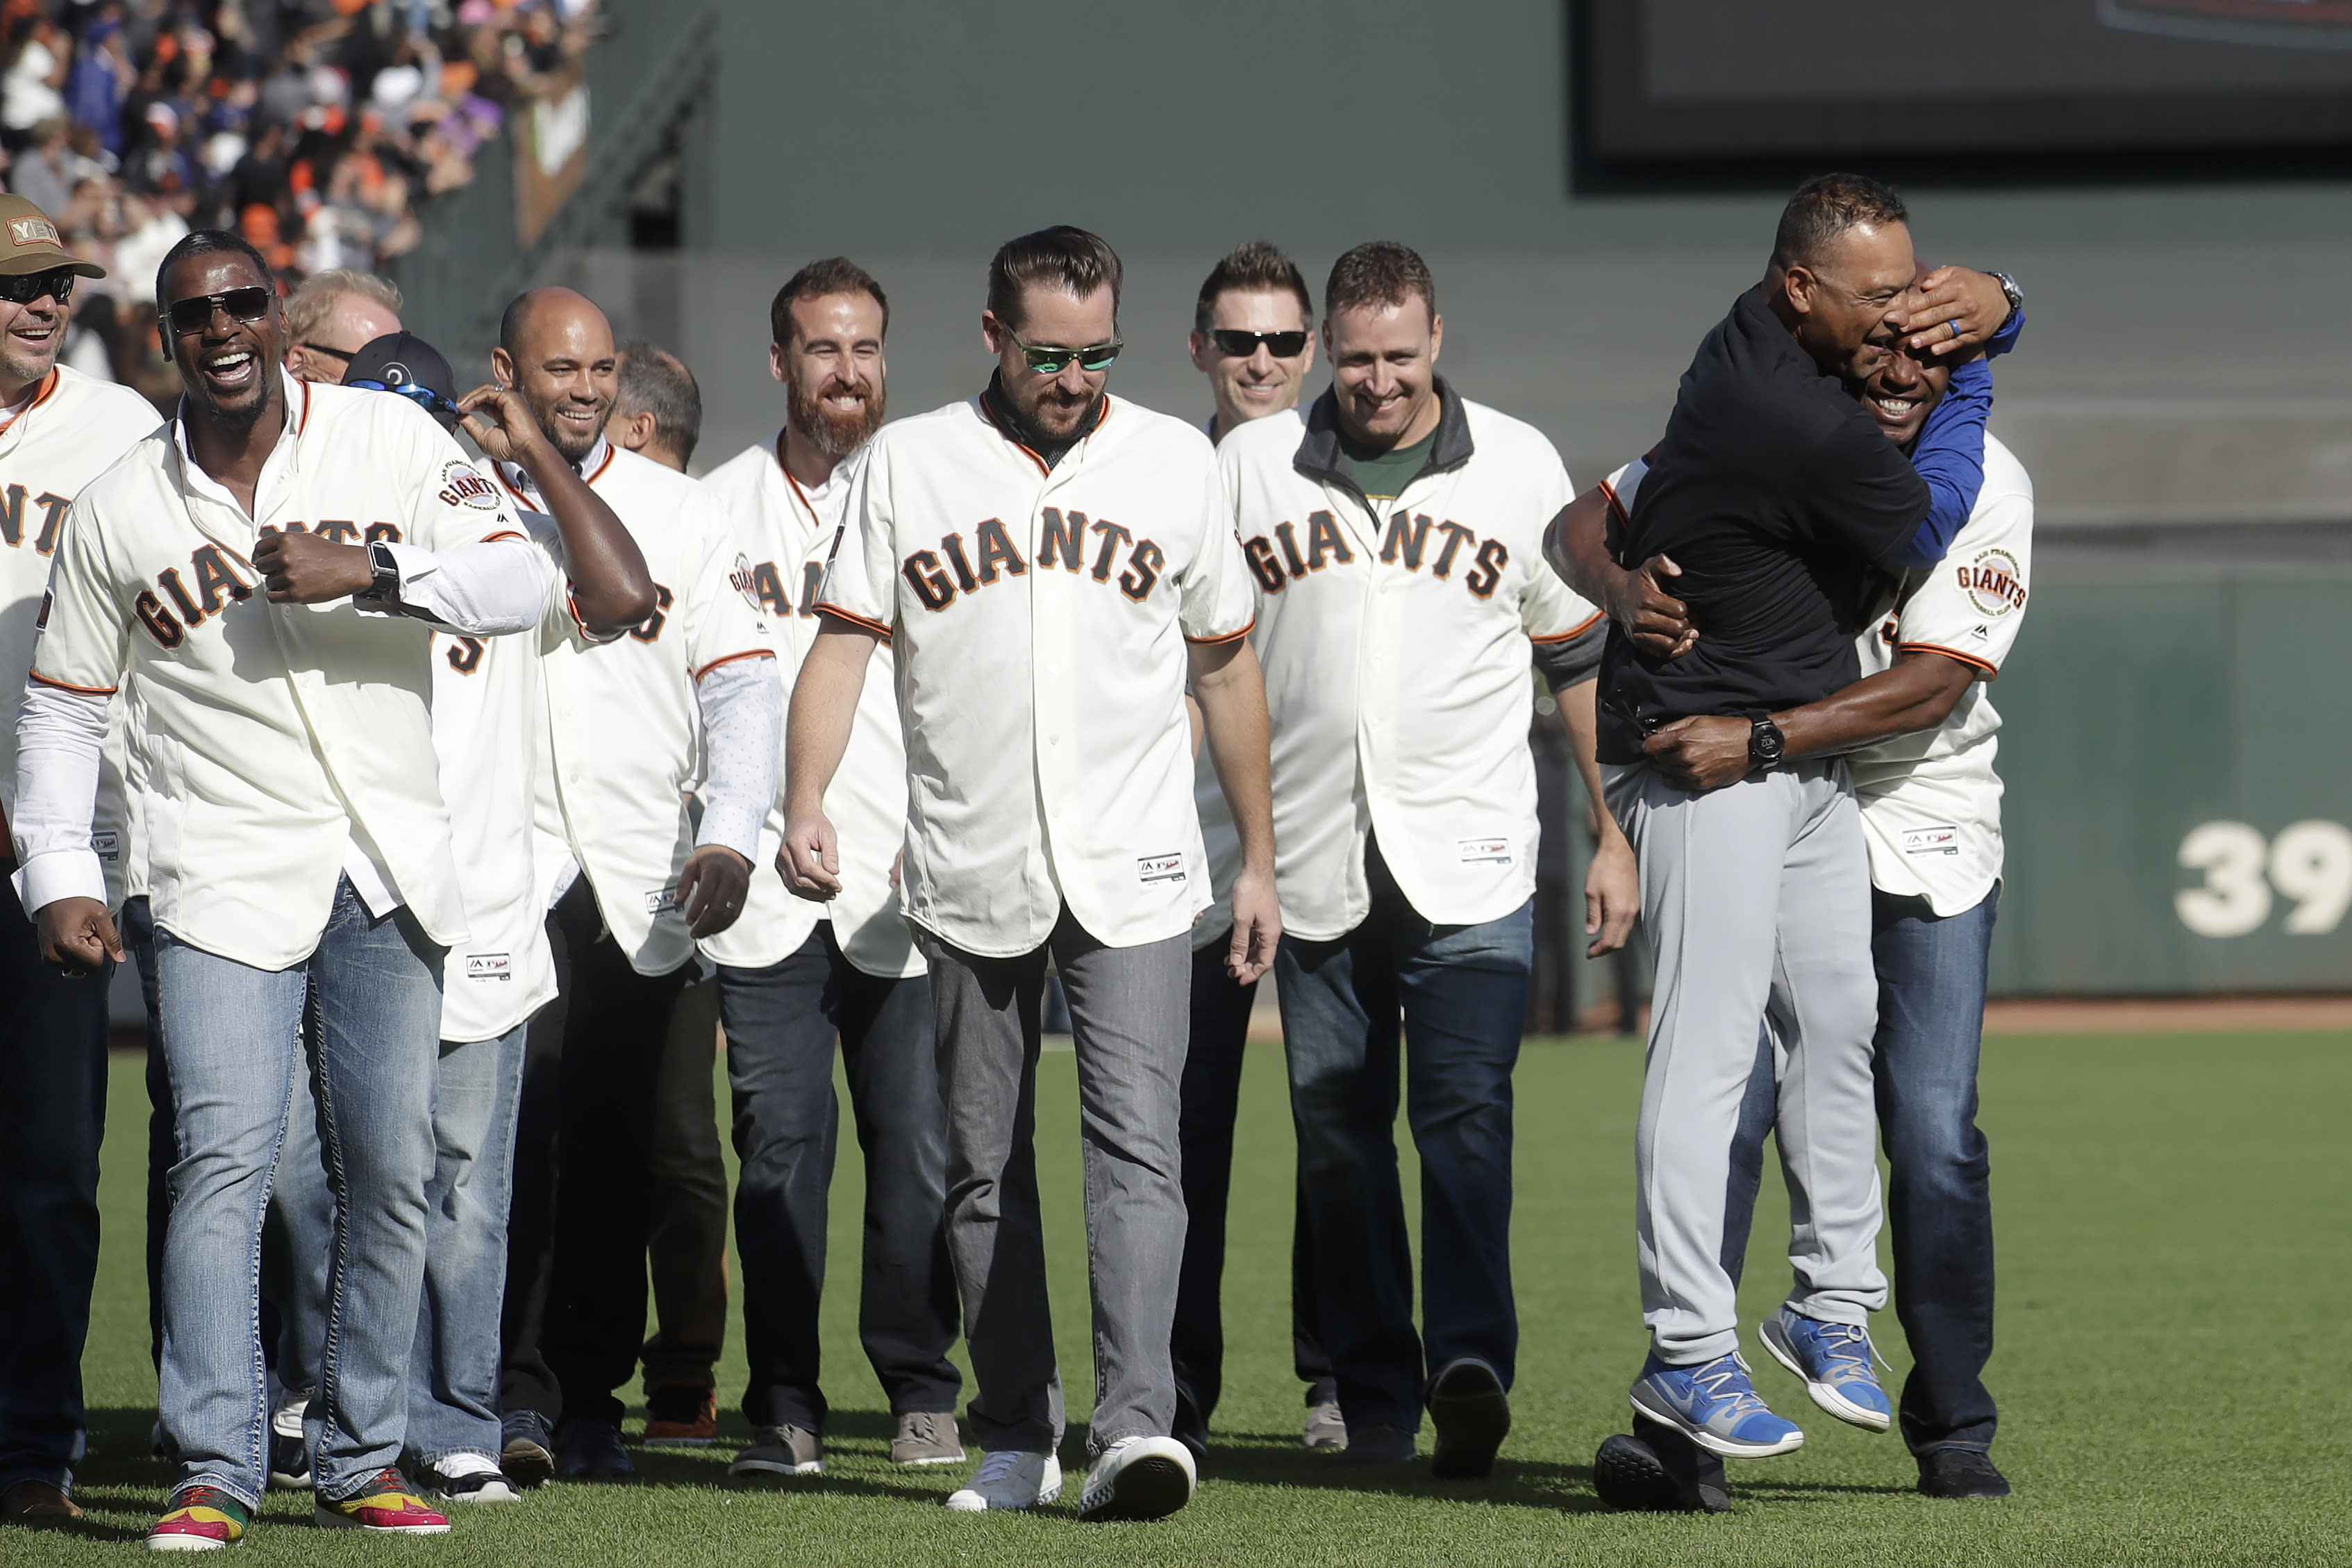 Los Angeles Dodgers manager Dave Roberts, second from left, hugs former San Francisco Giants player Barry Bonds during a ceremony honoring Giants manager Bruce Bochy after a baseball game between the Giants and the Dodgers in San Francisco, Sunday, Sept. 29, 2019. (AP Photo/Jeff Chiu, Pool)